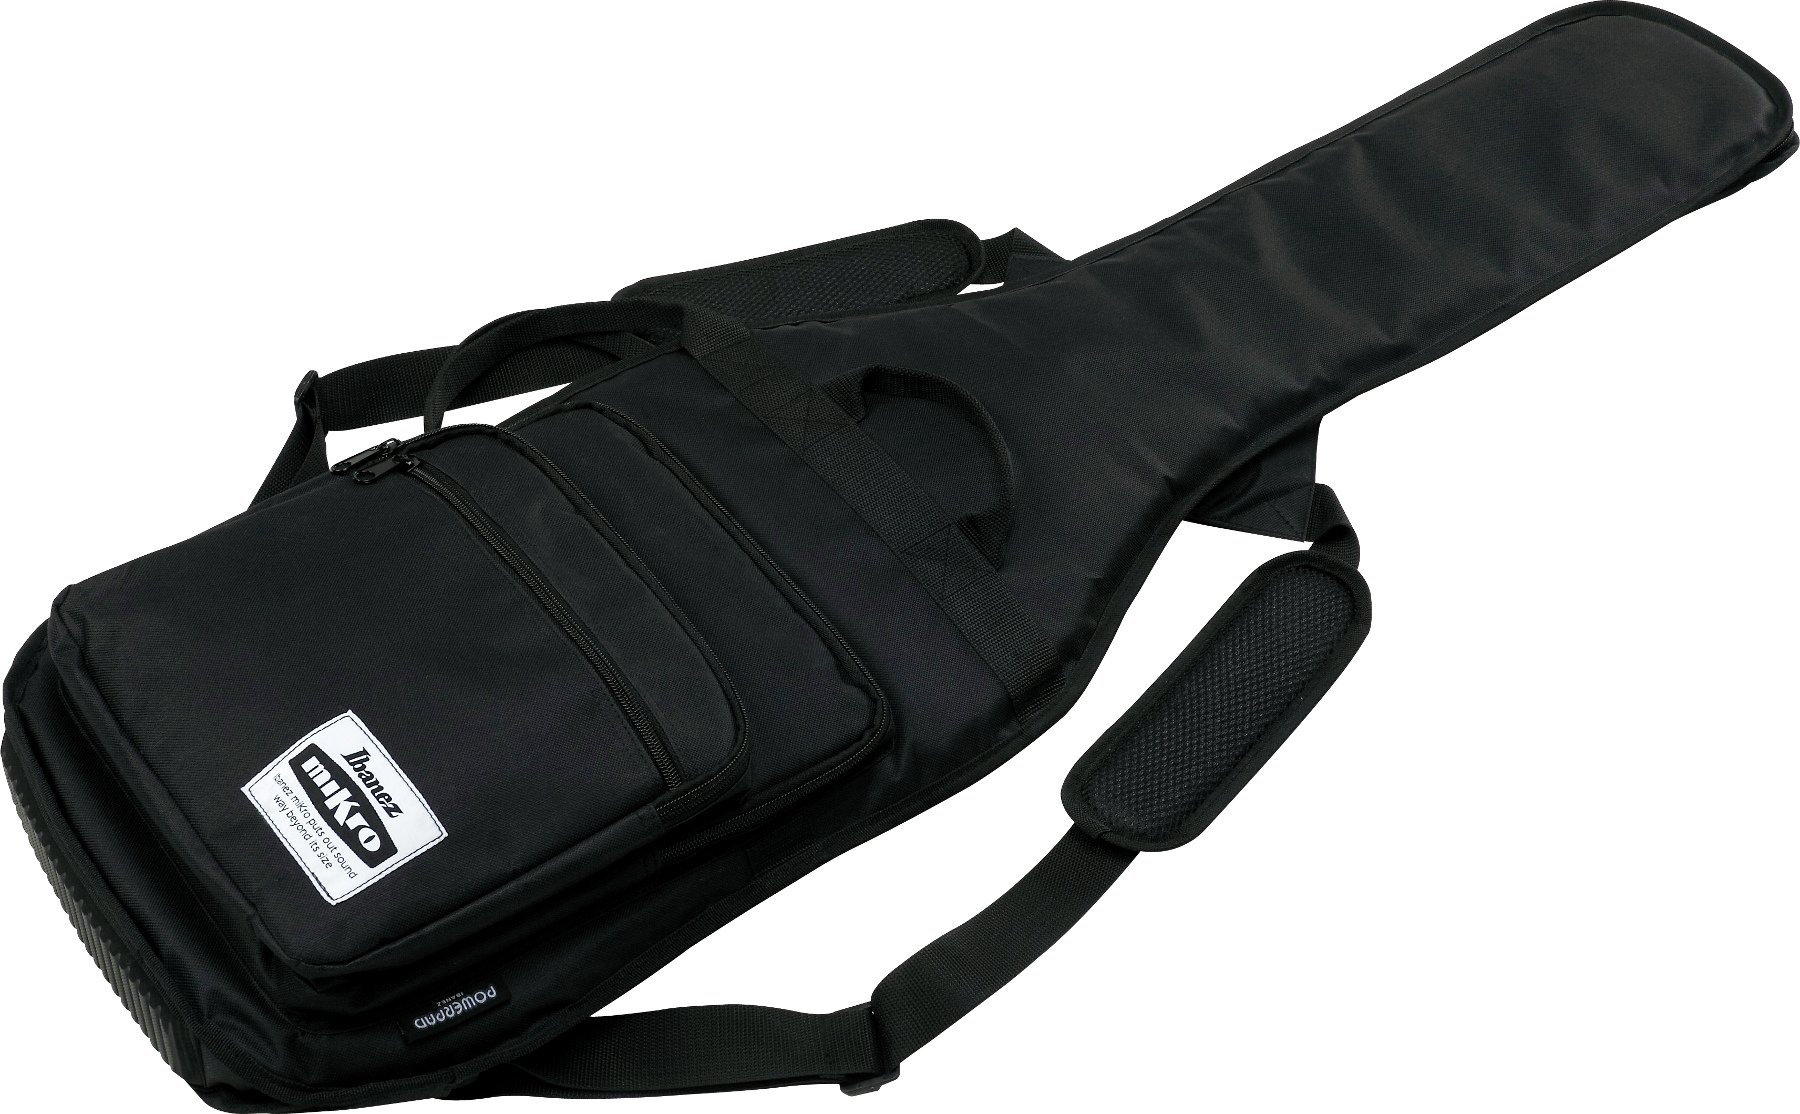 Padded Guitar Bag for GSR miKro Guitar or Bass